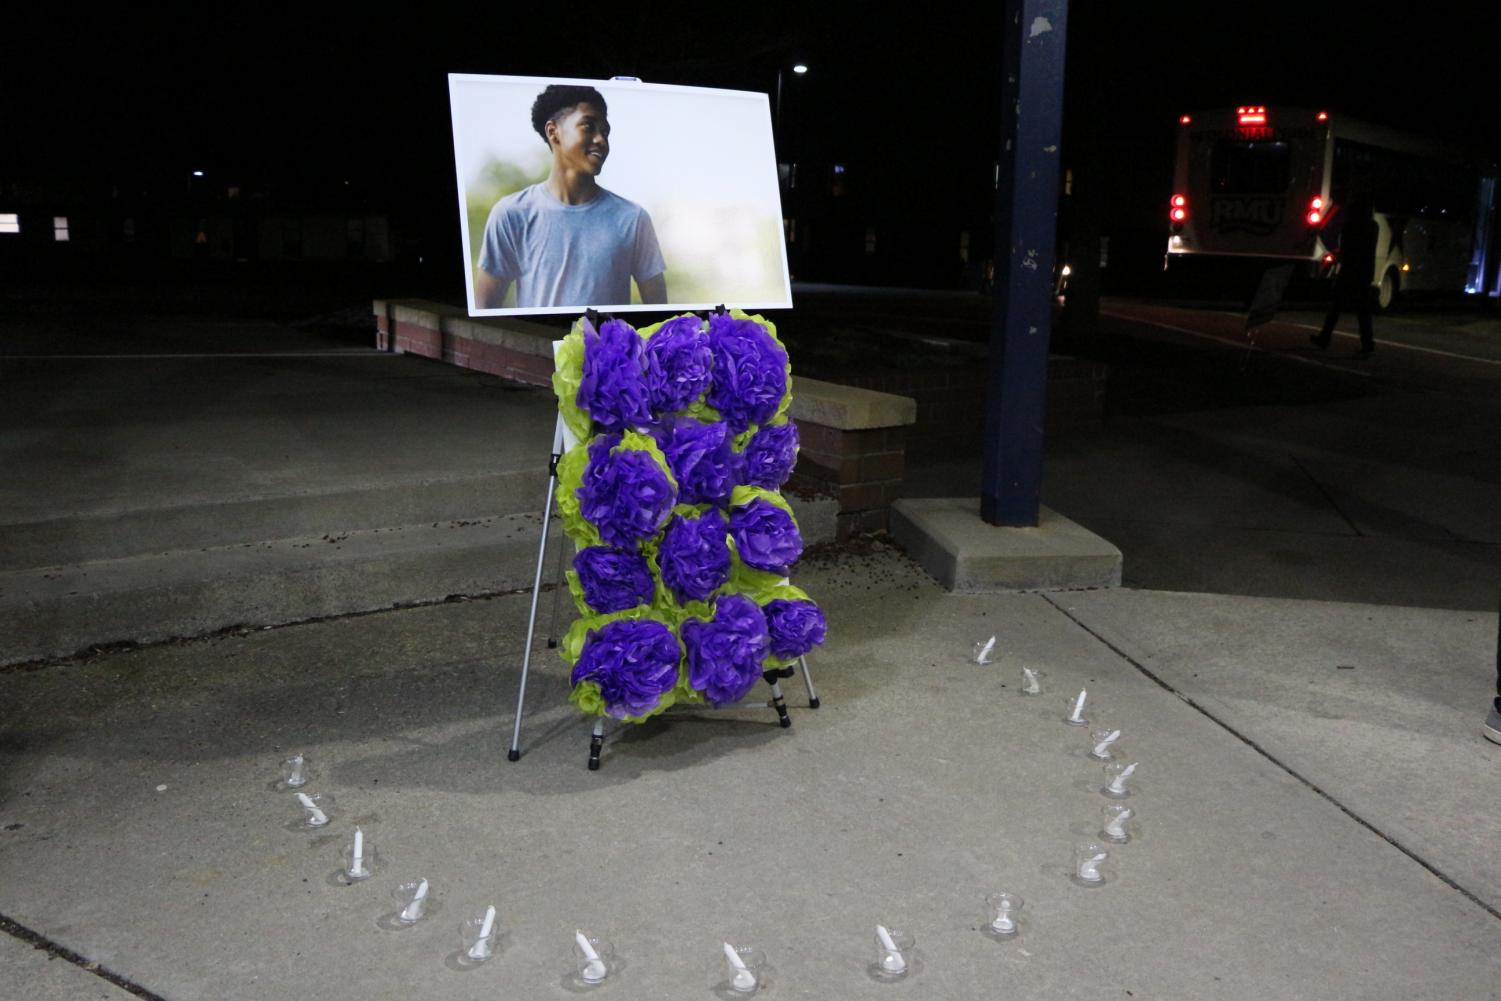 The+Robert+Morris+University+community+gathered+to+remember+and+honor+Antwon+Rose+Jr.%2C+who+was+shot+and+killed+by+Pittsburgh+Police+Officer+Michael+Rosdeld+in+June+2018.+Photo+Date%3A+March+29%2C+2019.+Photo+Credit%3A+%28RMU+Sentry+Media%2FSoundharjya+Babu%29